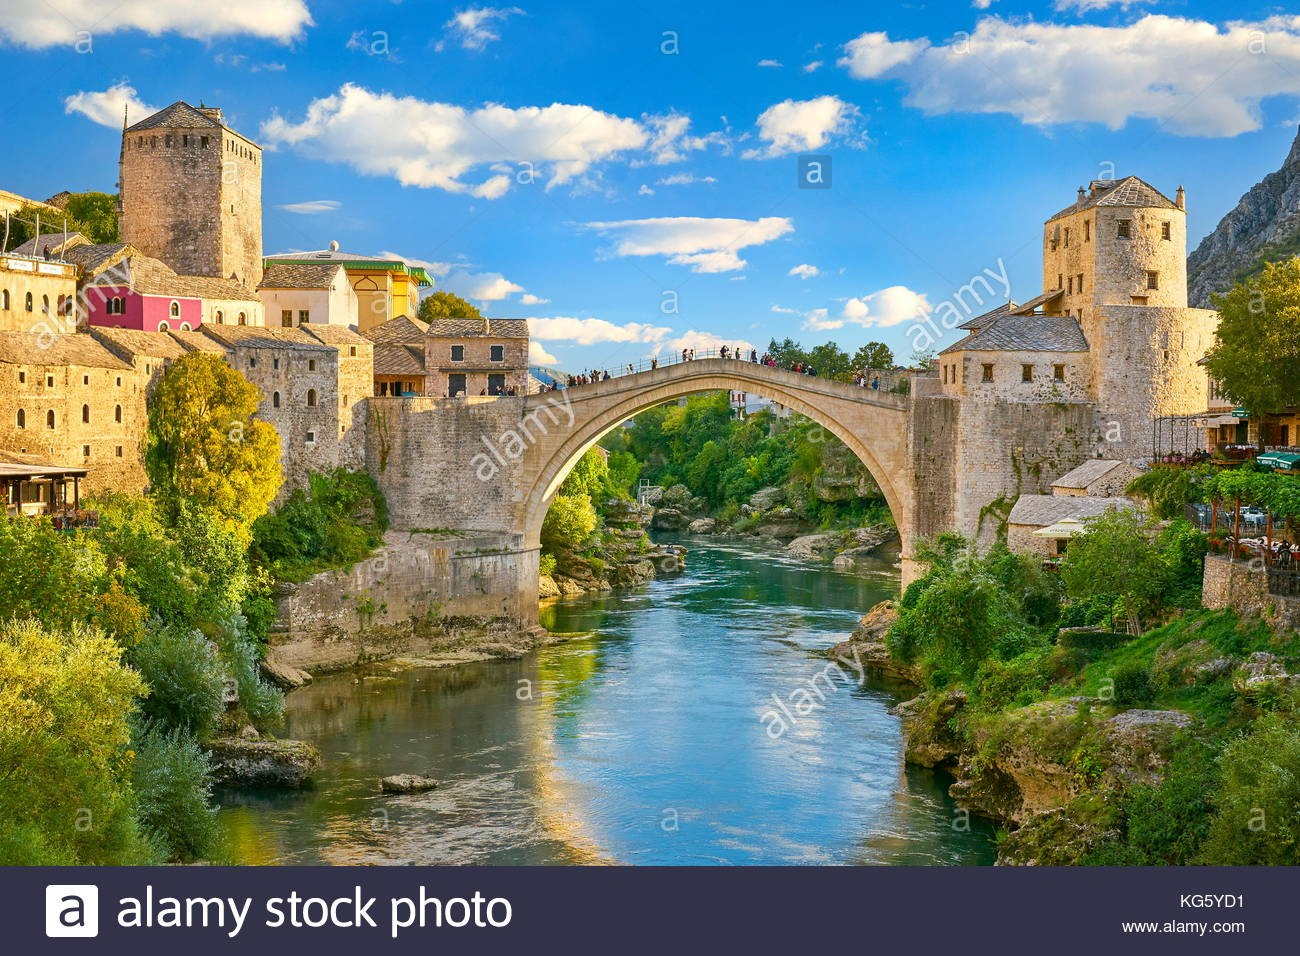 Maddalena Bridge was built in the 11th century. As one of the most precious treasures of Italy, the bridge has insired a lot of poetic and literary works.